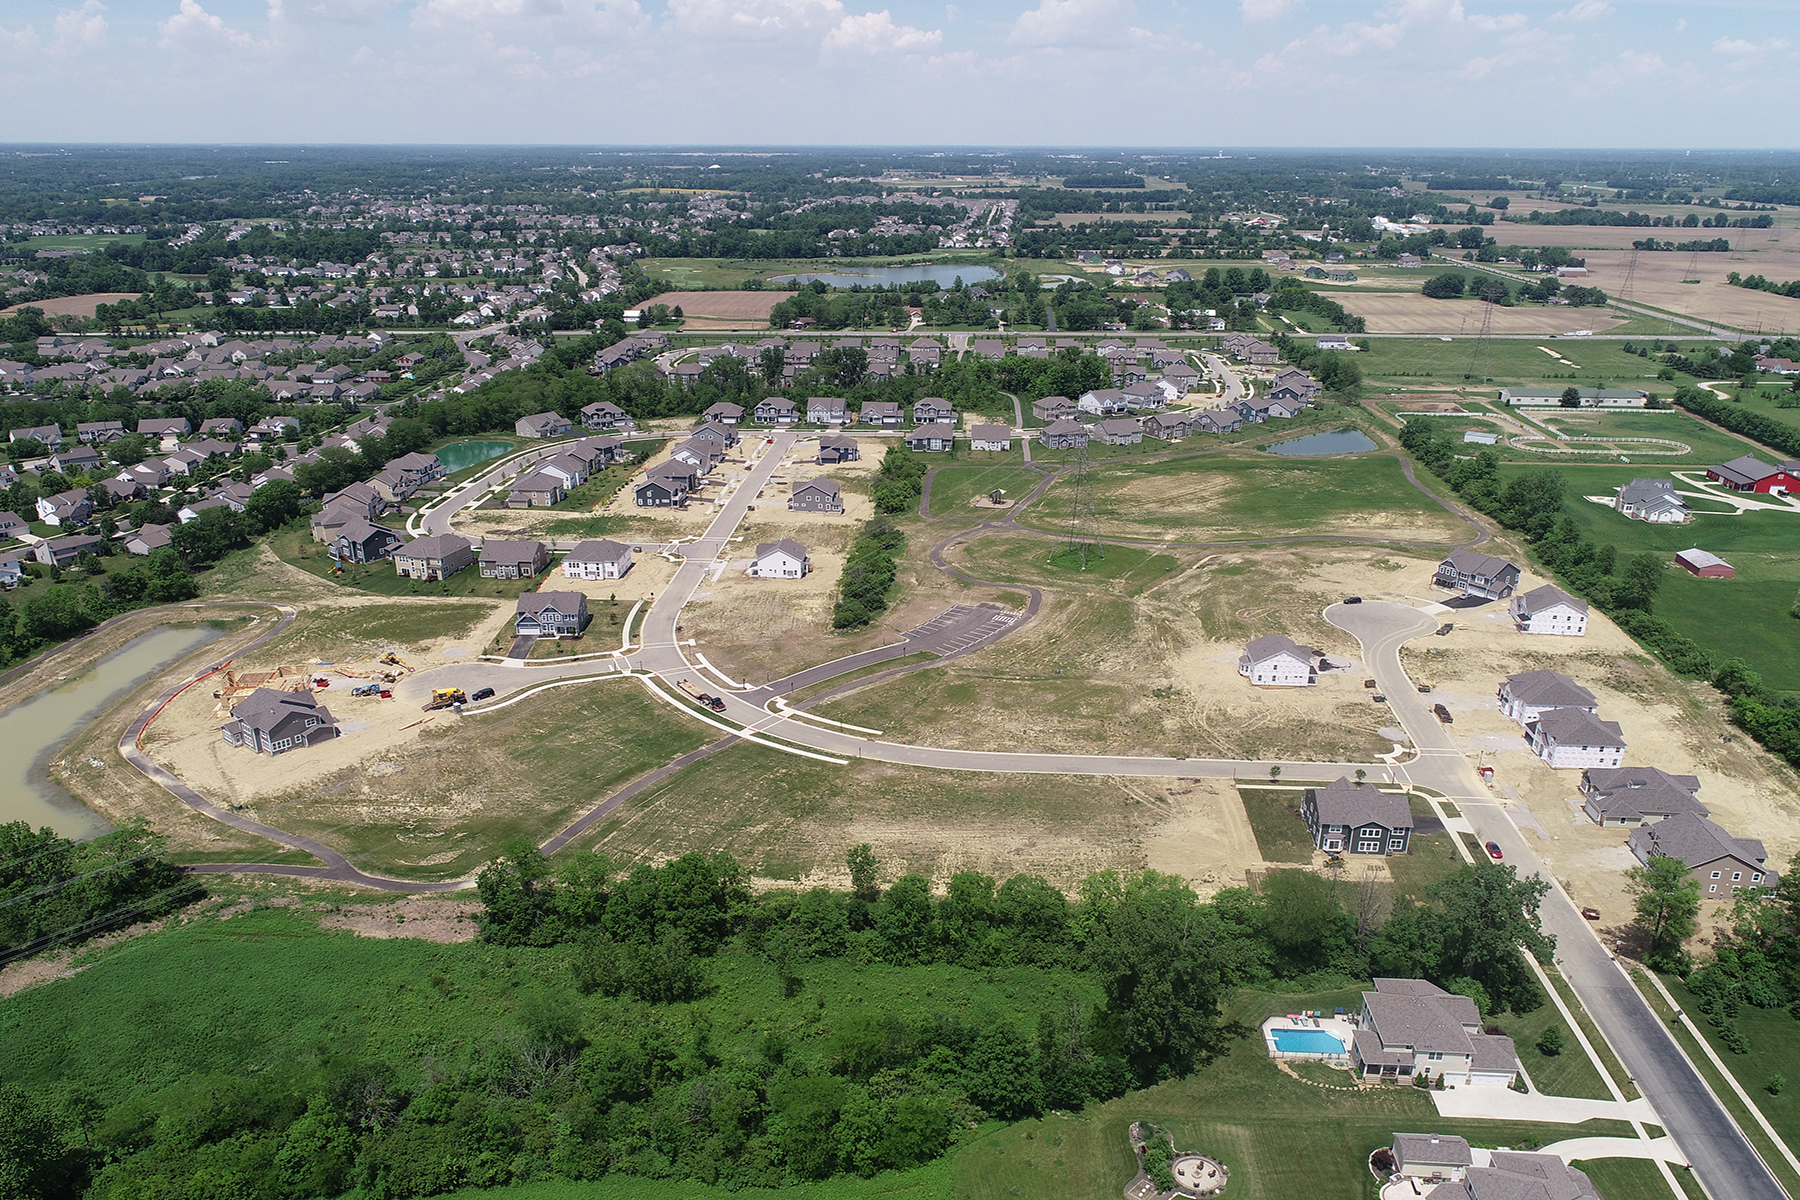 The Reserve at Scioto Glenn Aerial